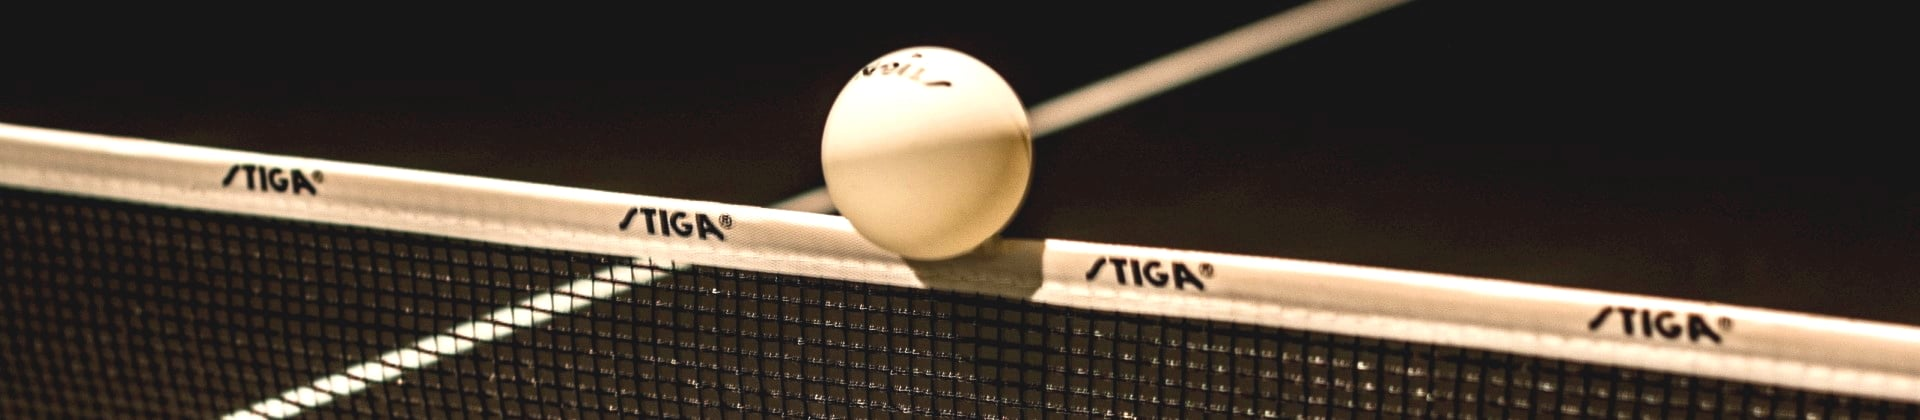 Best Ping Pong Balls Reviewed in Detail